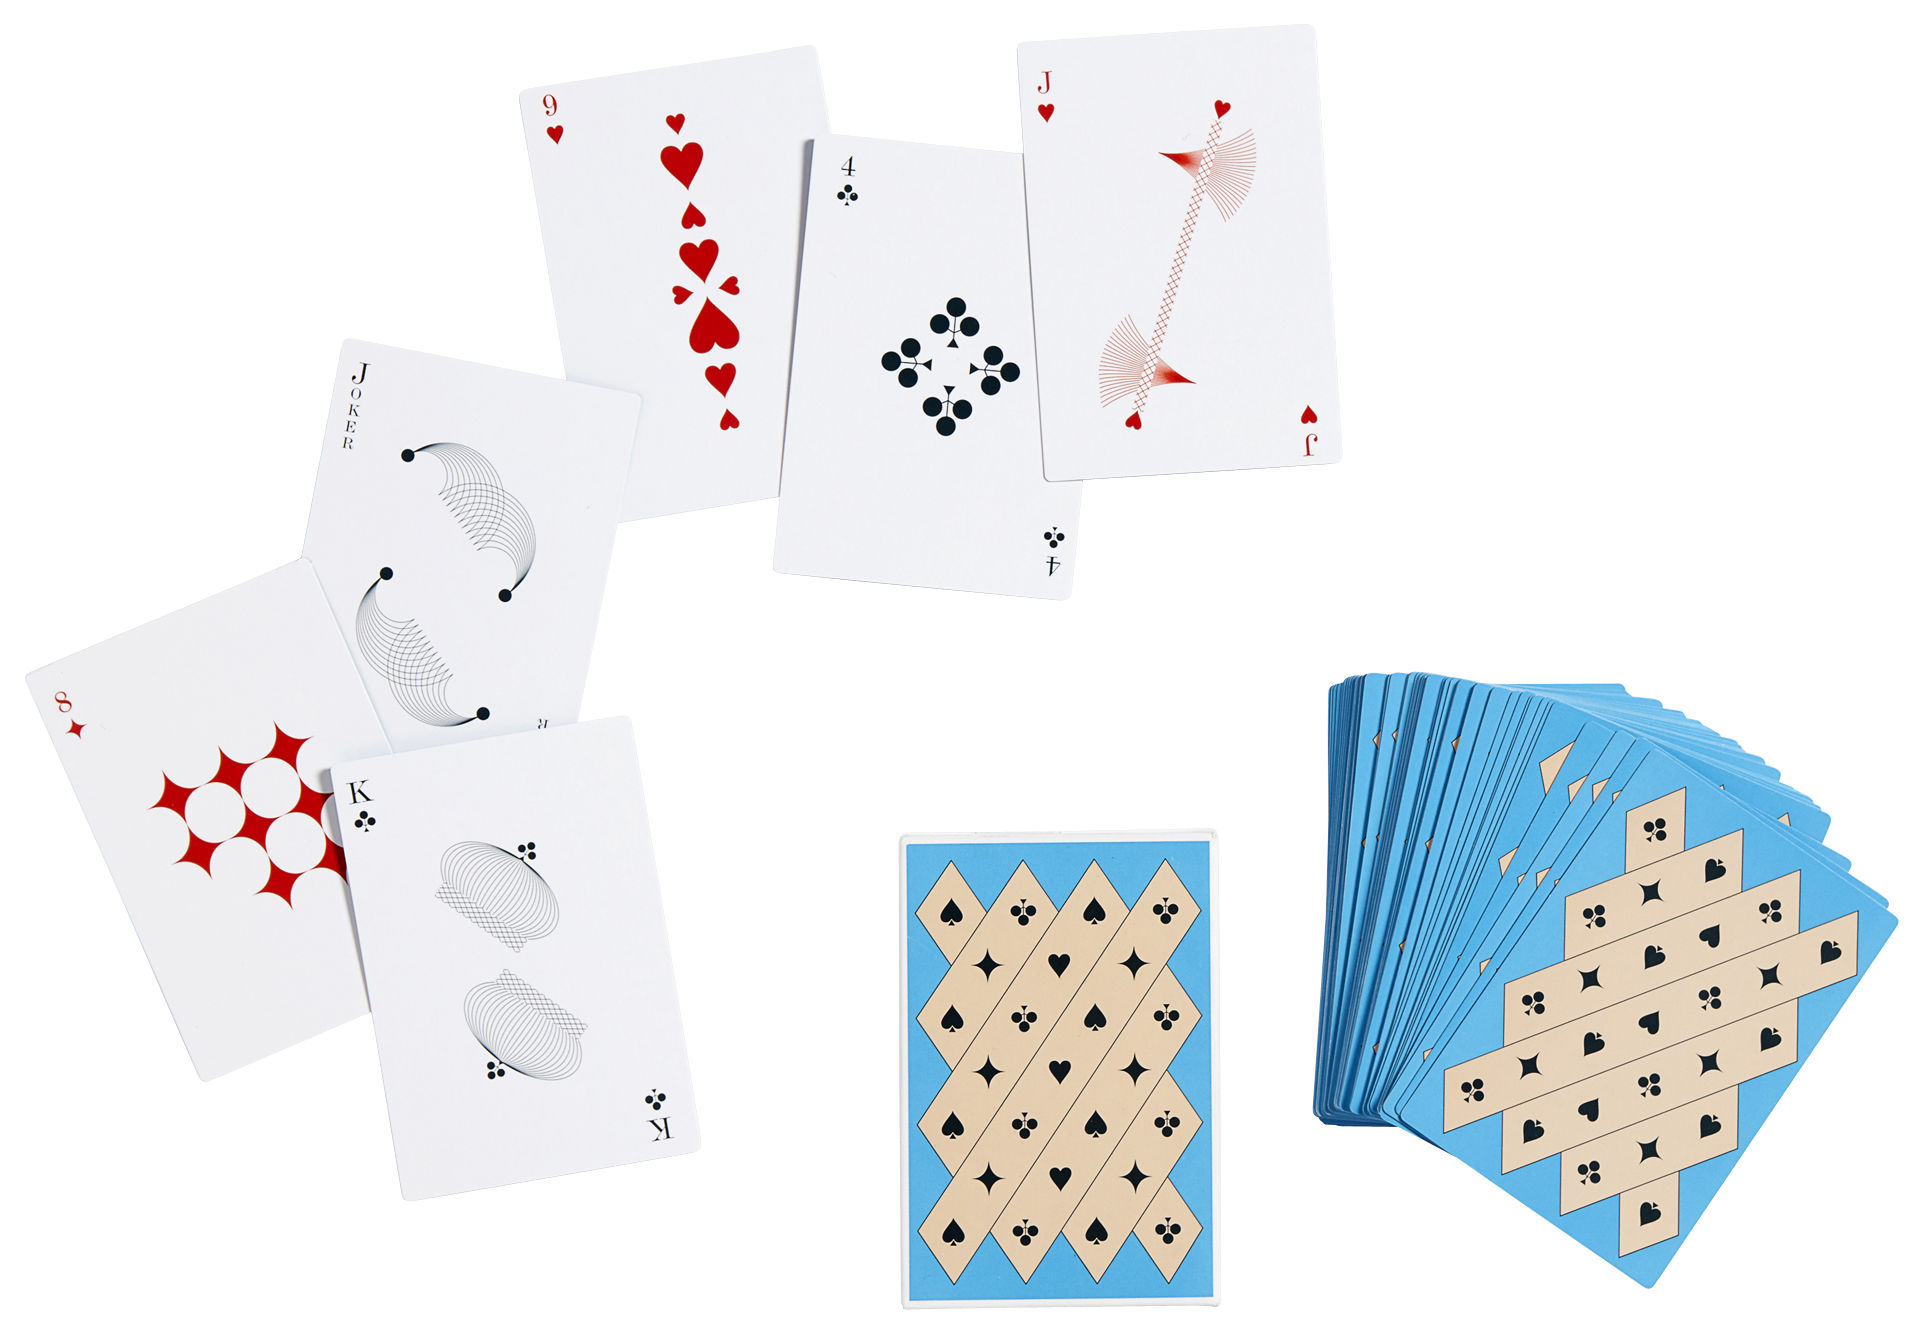 Decoration - Children's Home Accessories - Playing cards - 54 cards by Hay - Blue - Plastic coated cardboard